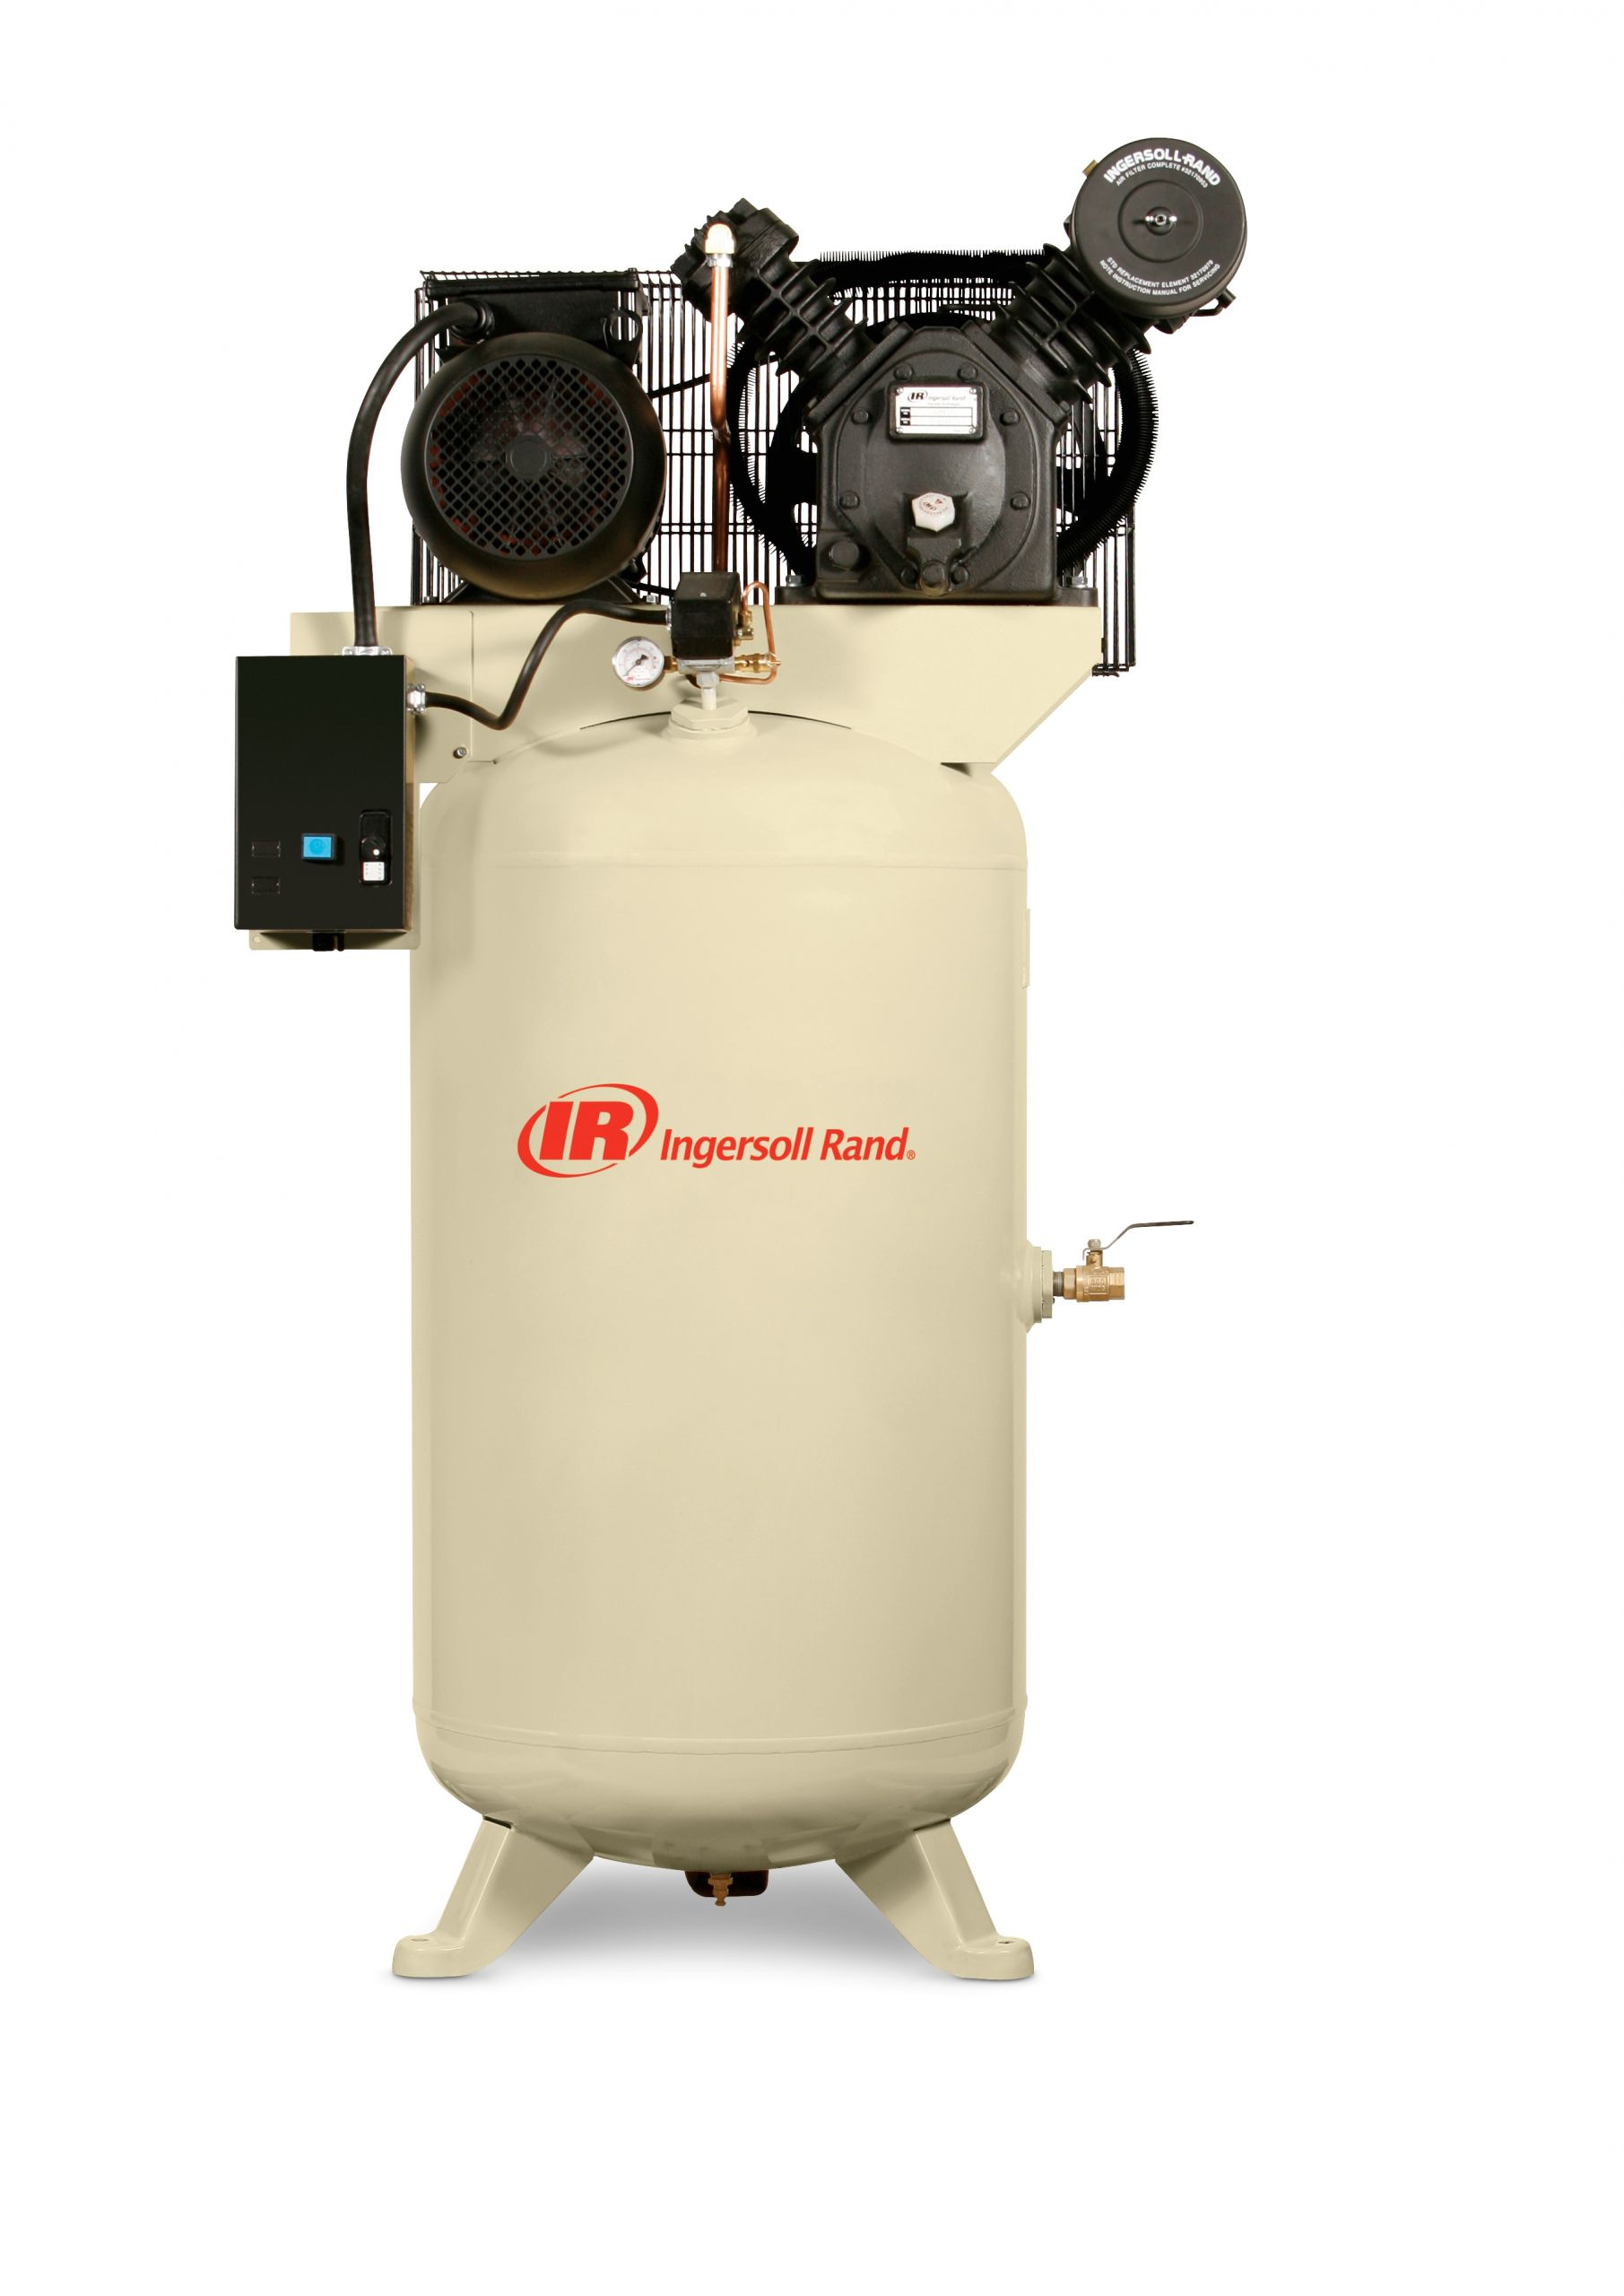 2340n5 5hp reciprocating electric two stage compressor 3phase p rgb jpg